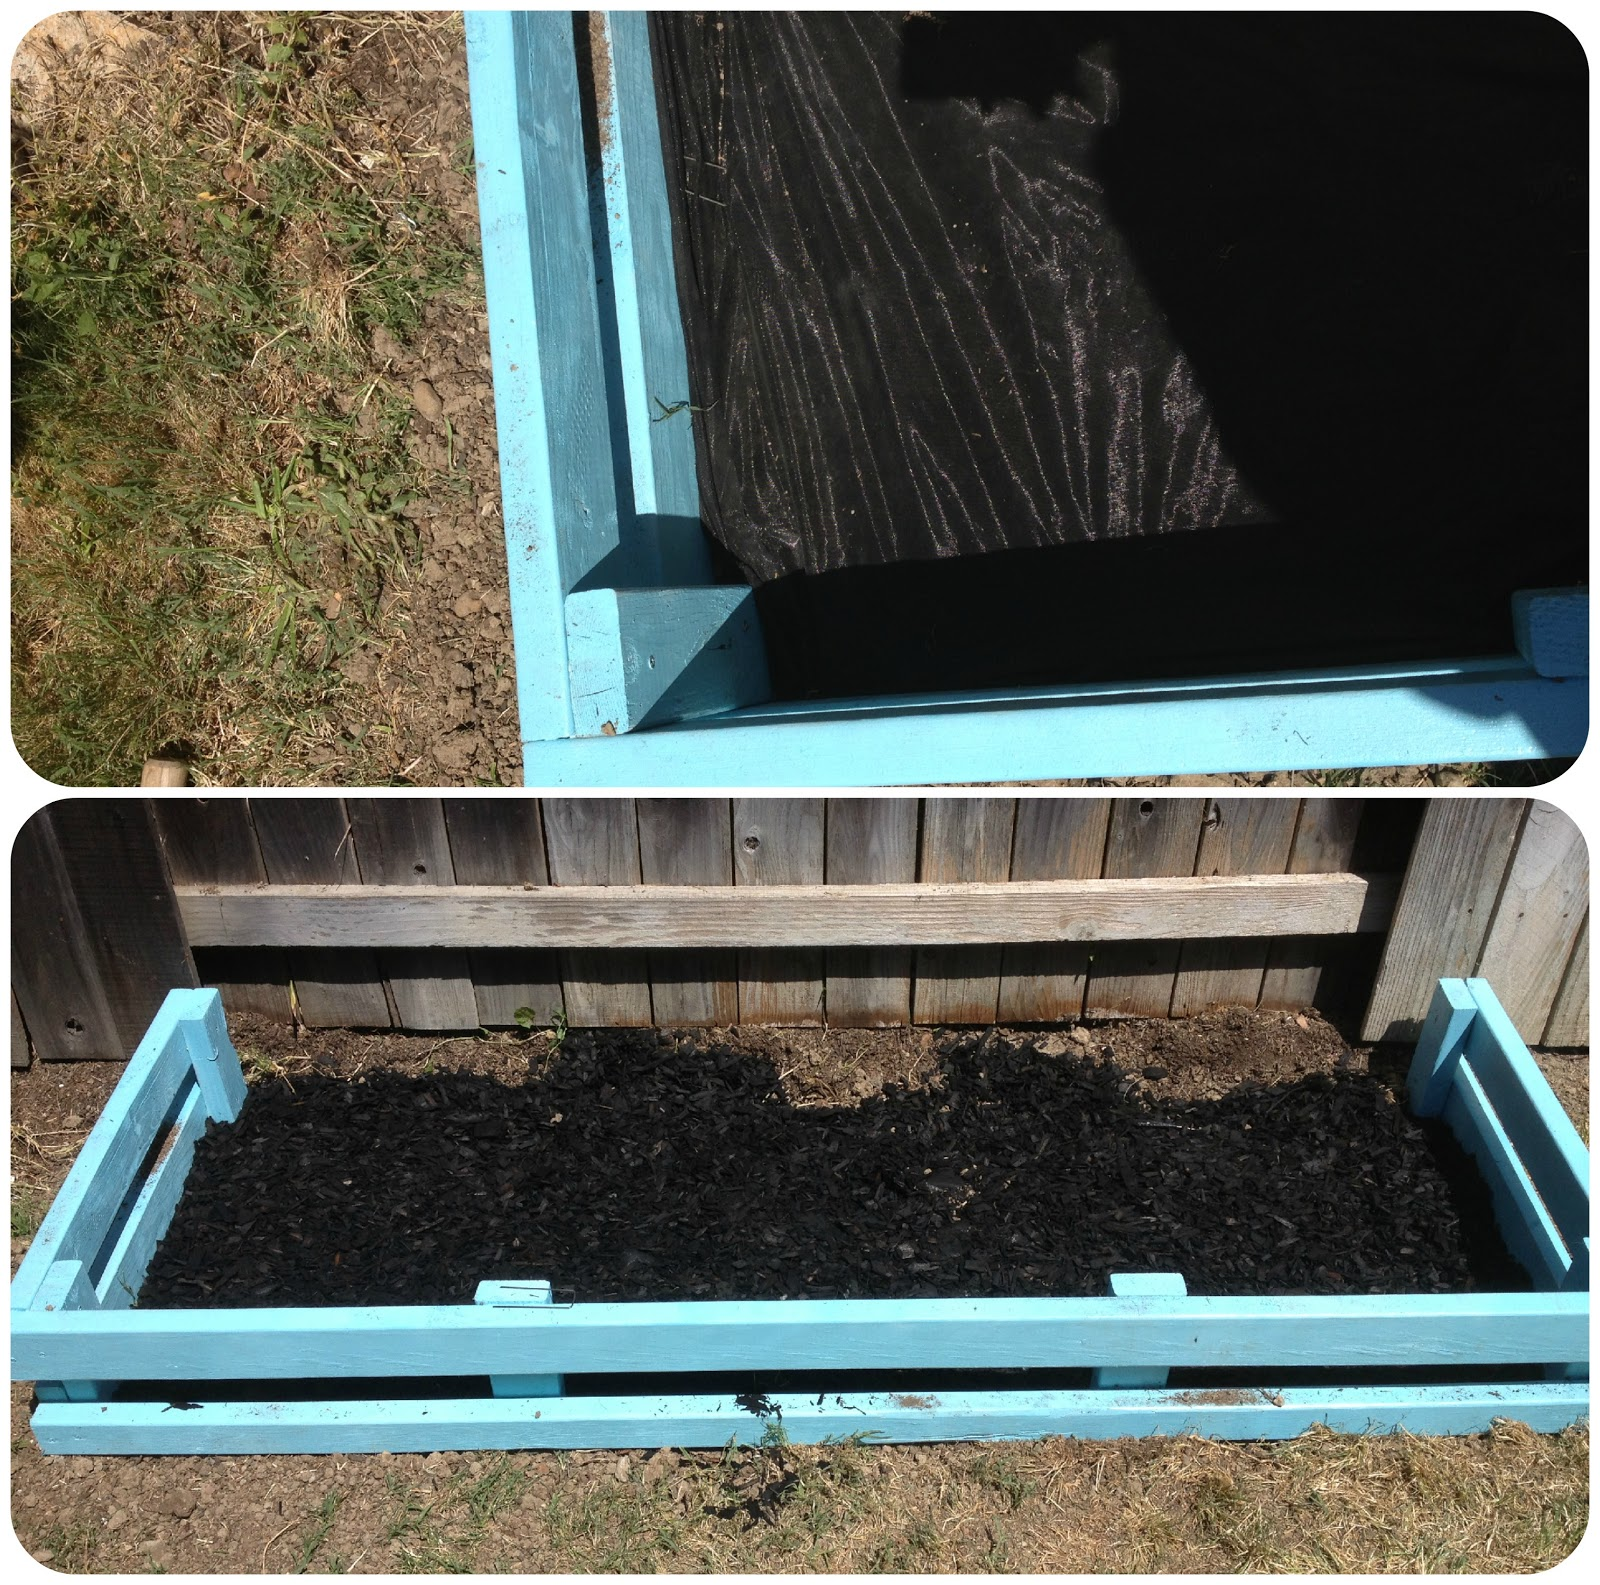 Once the garden box was ready  we drilled holes in the bottom of three  galvanized drink tubs from the Home Depot. Measure Once  Cut Twice  Colorful Summer Garden Box Tutorial